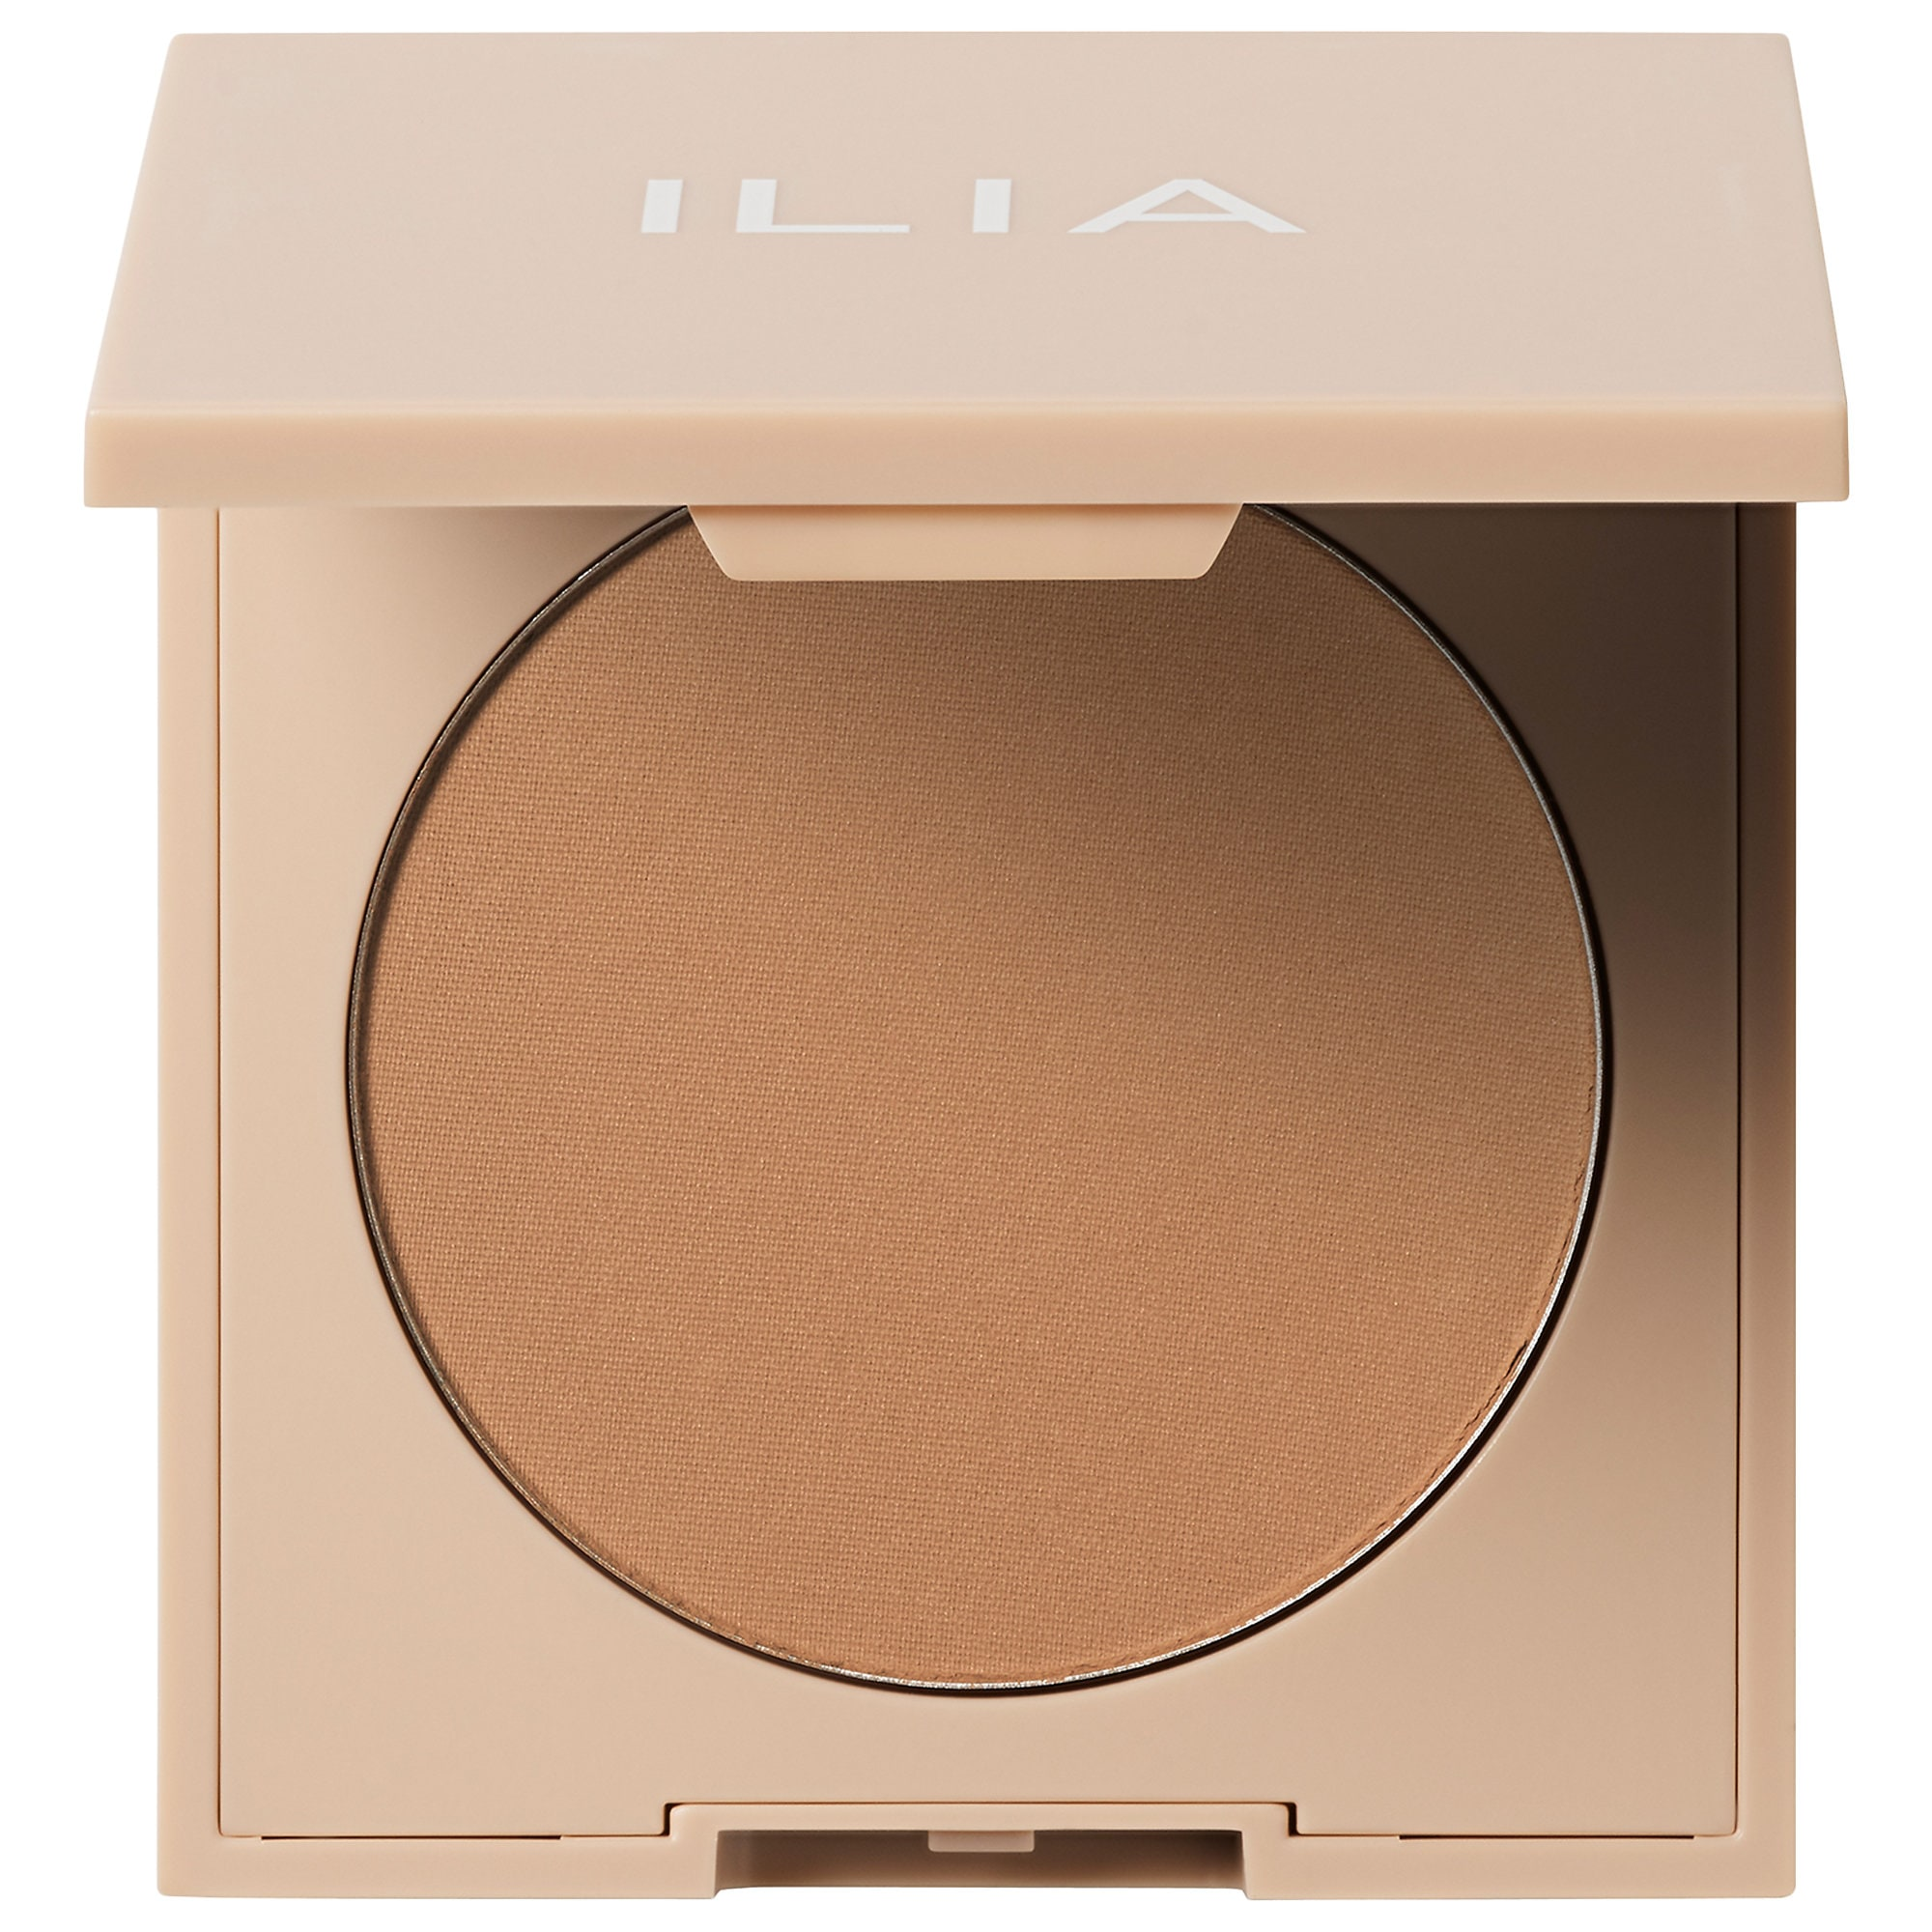 ILIA - NightLite Bronzer Powder